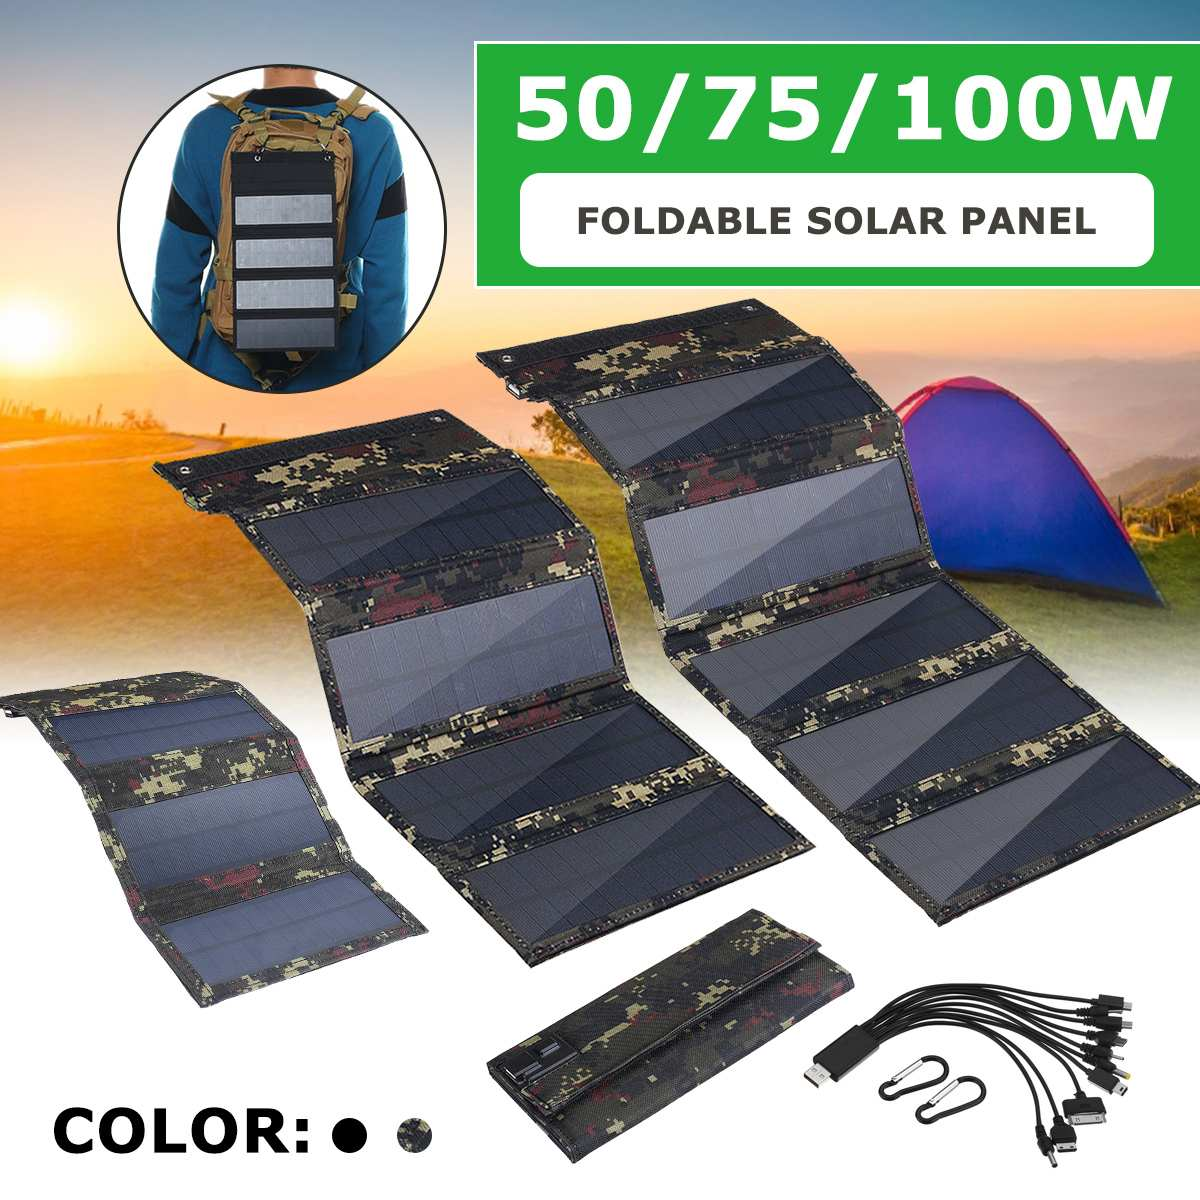 50/75/100W Foldable Solar Panel Sun Power Solar Cells Pack 10 in1 USB Cable Portable Solar Charger Phone For Hiking Camping